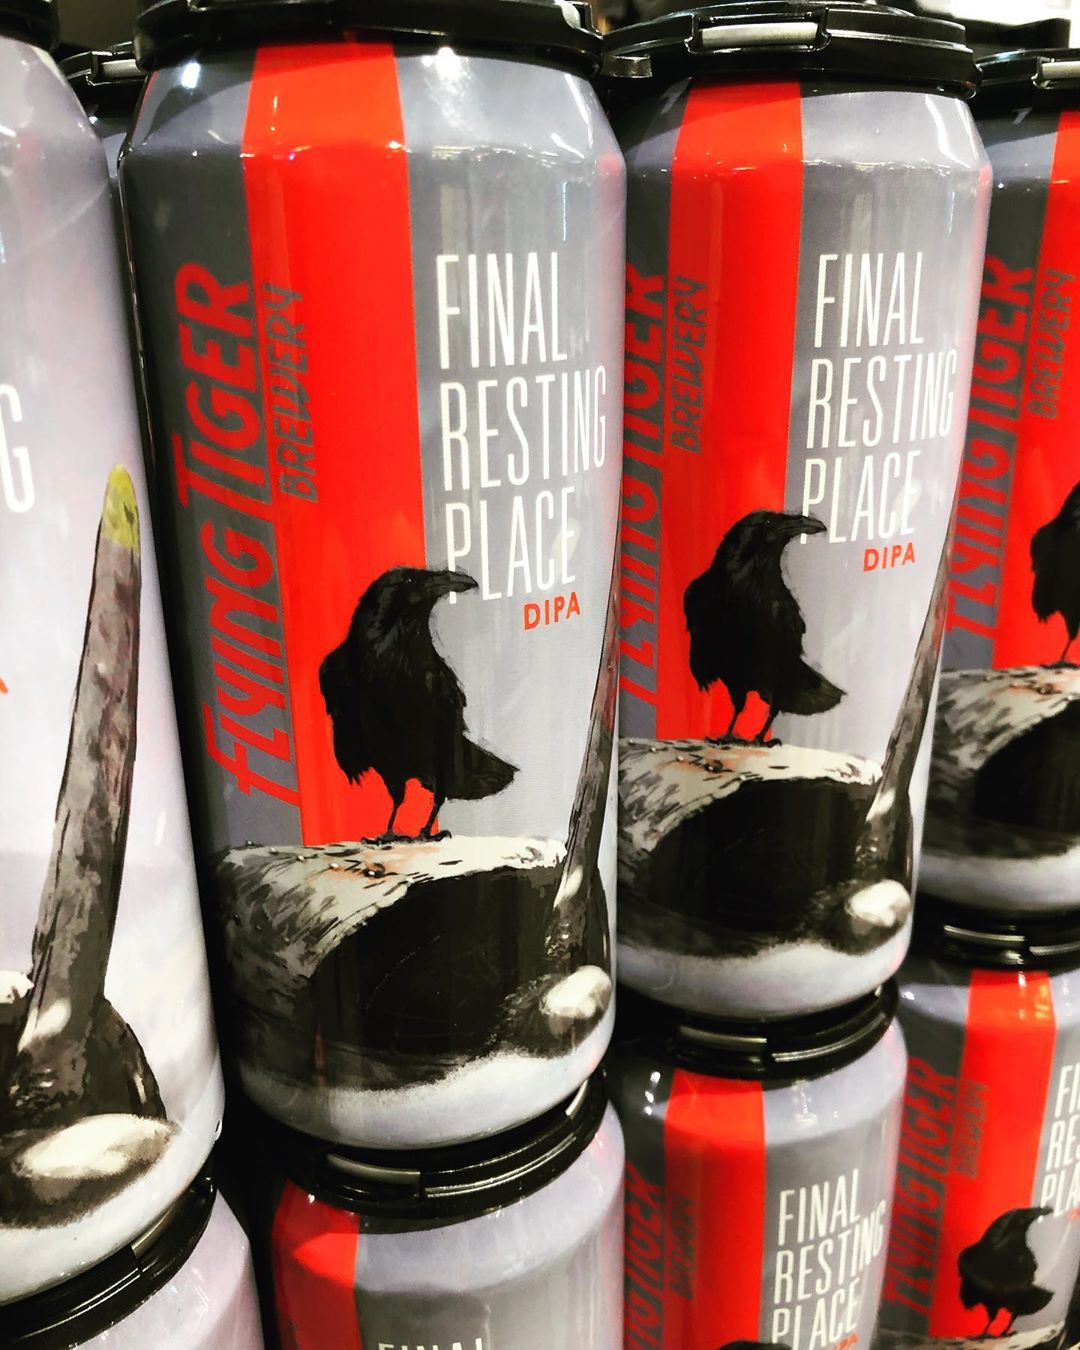 @flyingtigerbrewery Final Resting Place double IPA is back in stock at our Perkins Rd location!…